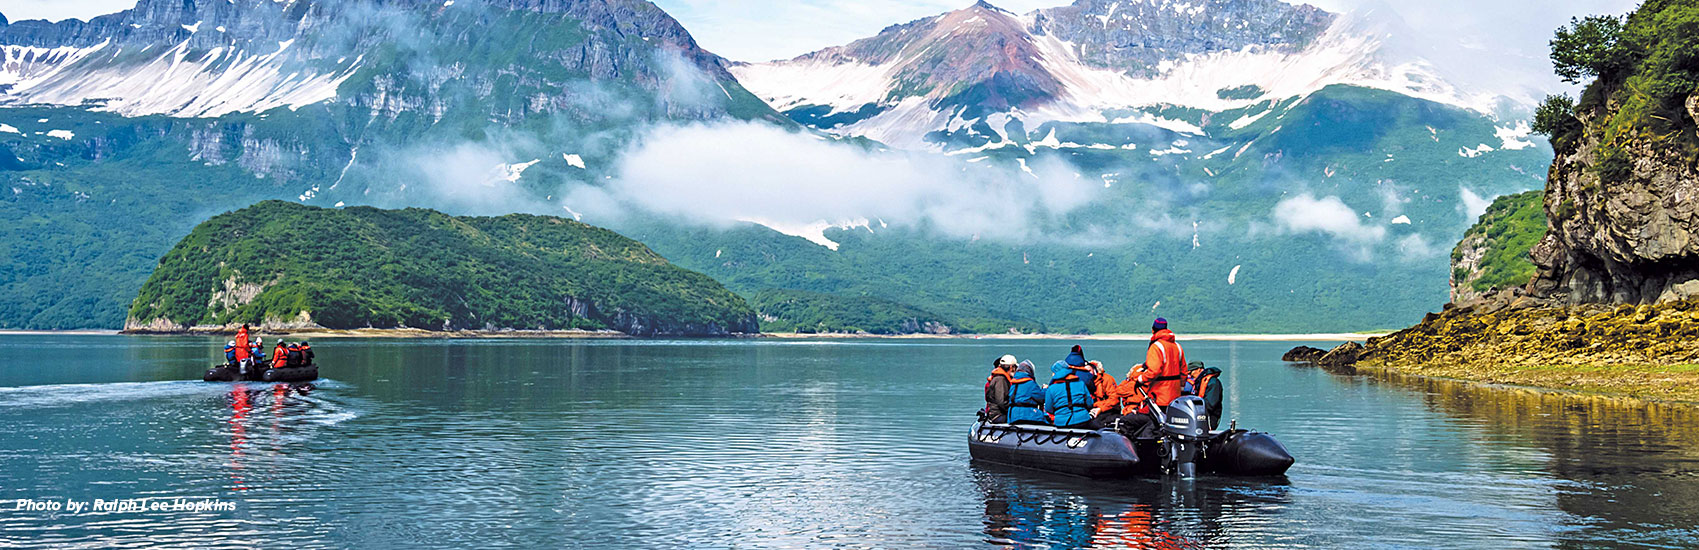 Authentic Alaska with Lindblad Expeditions 5